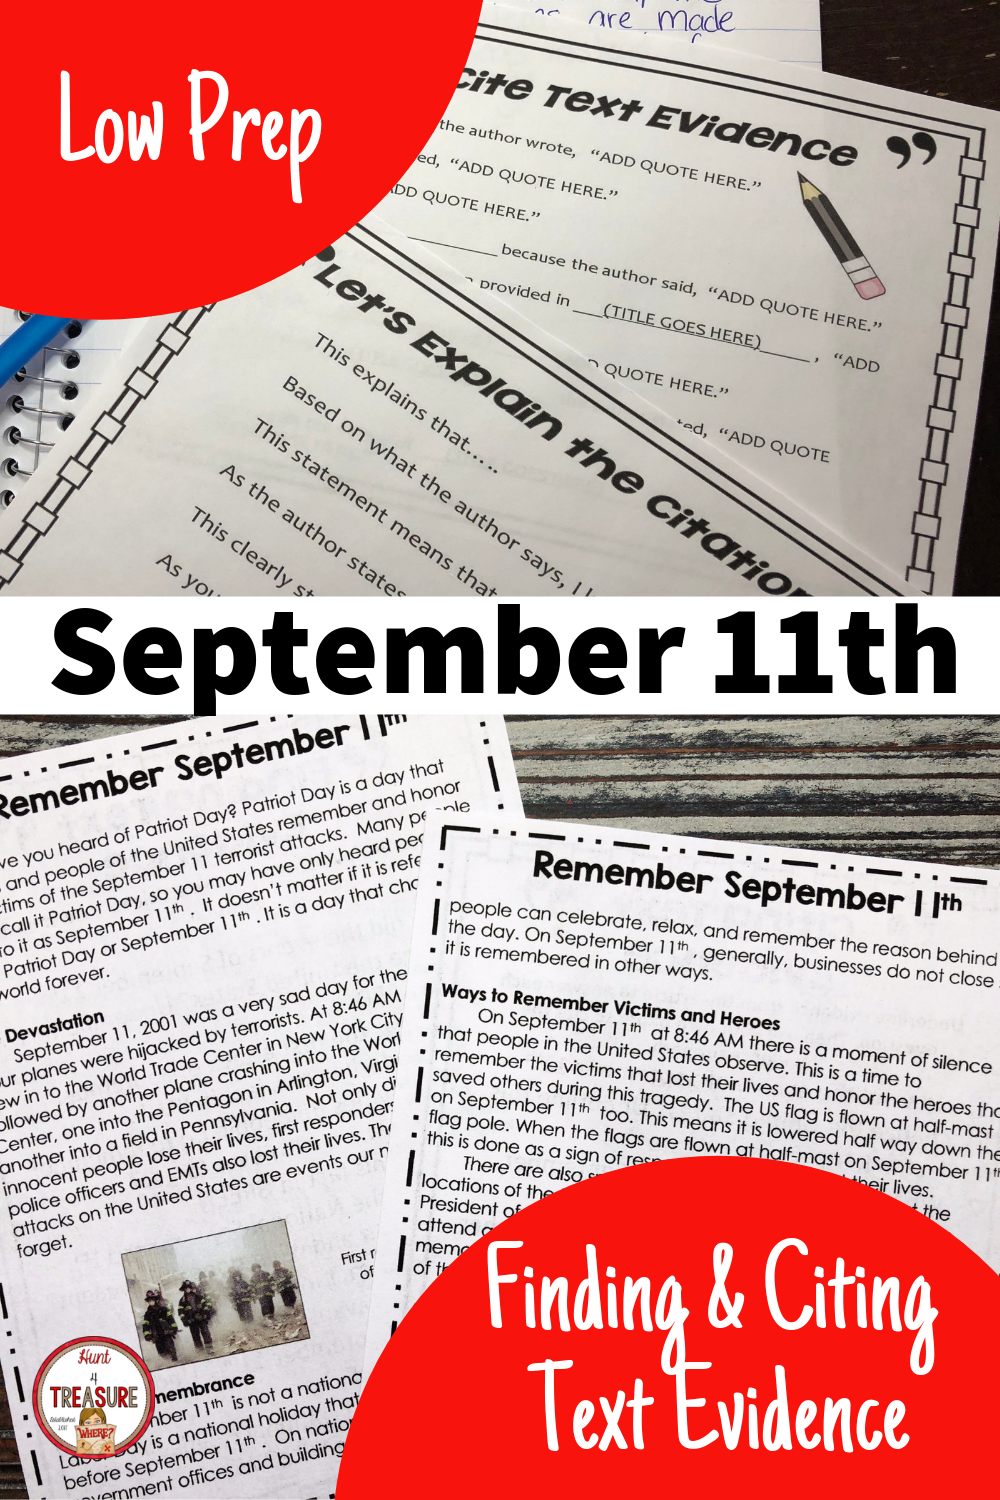 September 11th Reading Passage Finding And Citing Text Evidence Citing Text Evidence Text Evidence Text Evidence Activities [ 1500 x 1000 Pixel ]